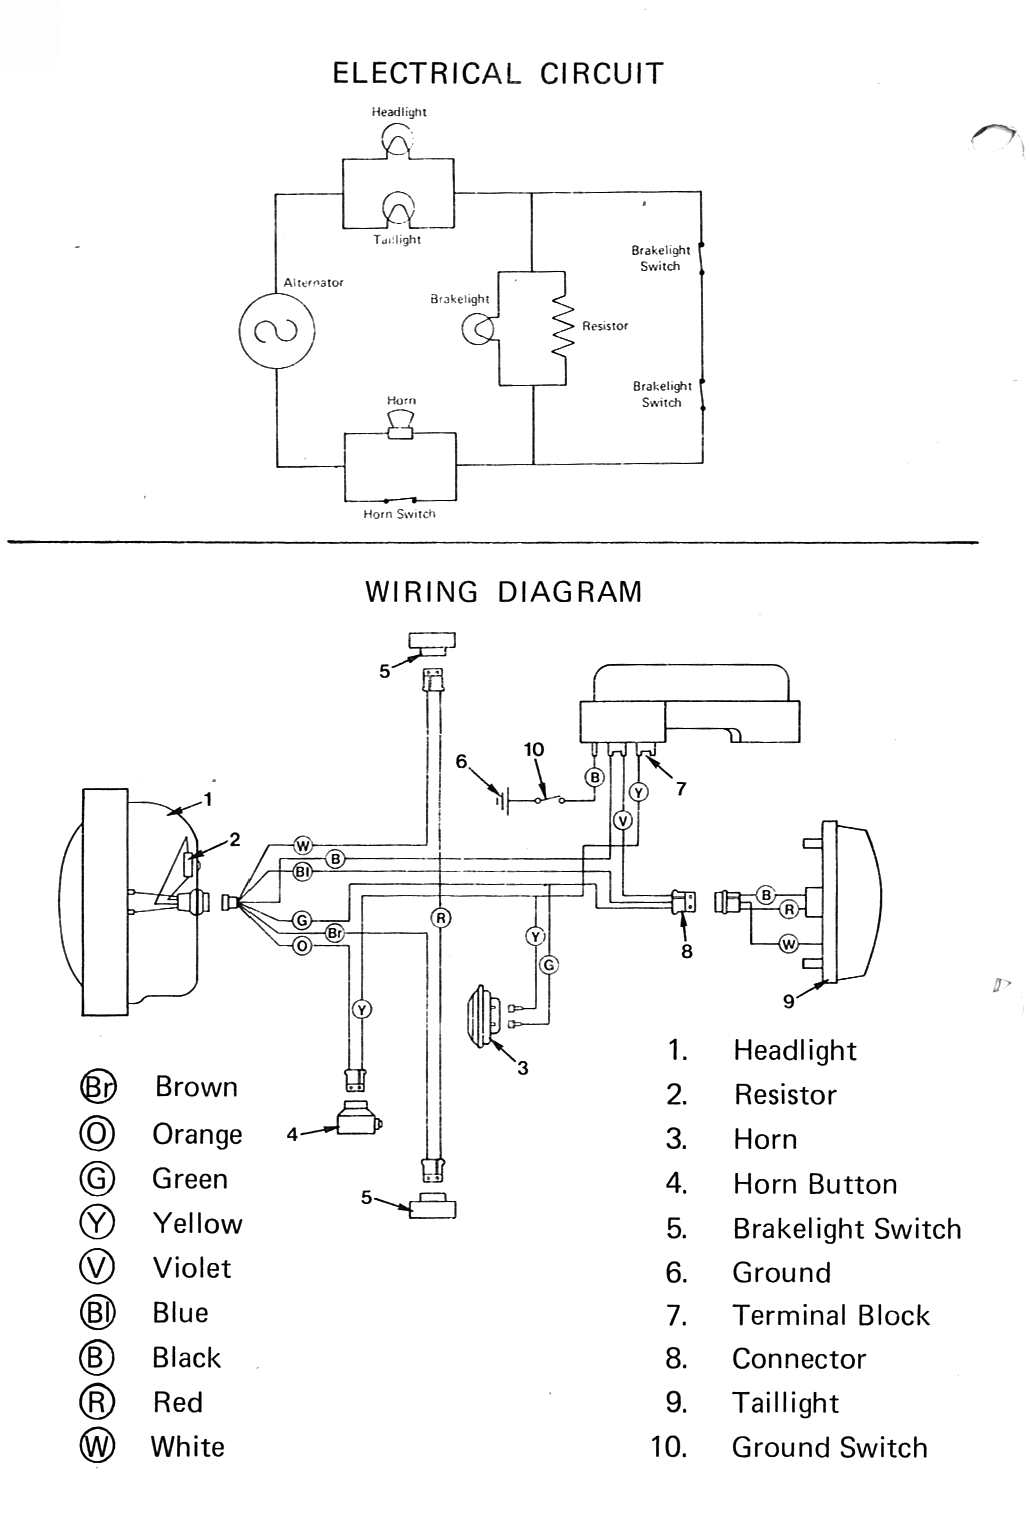 hight resolution of 1980 suzuki fz50 wiring diagram wiring diagram advance 1980 suzuki fa50 wiring diagram